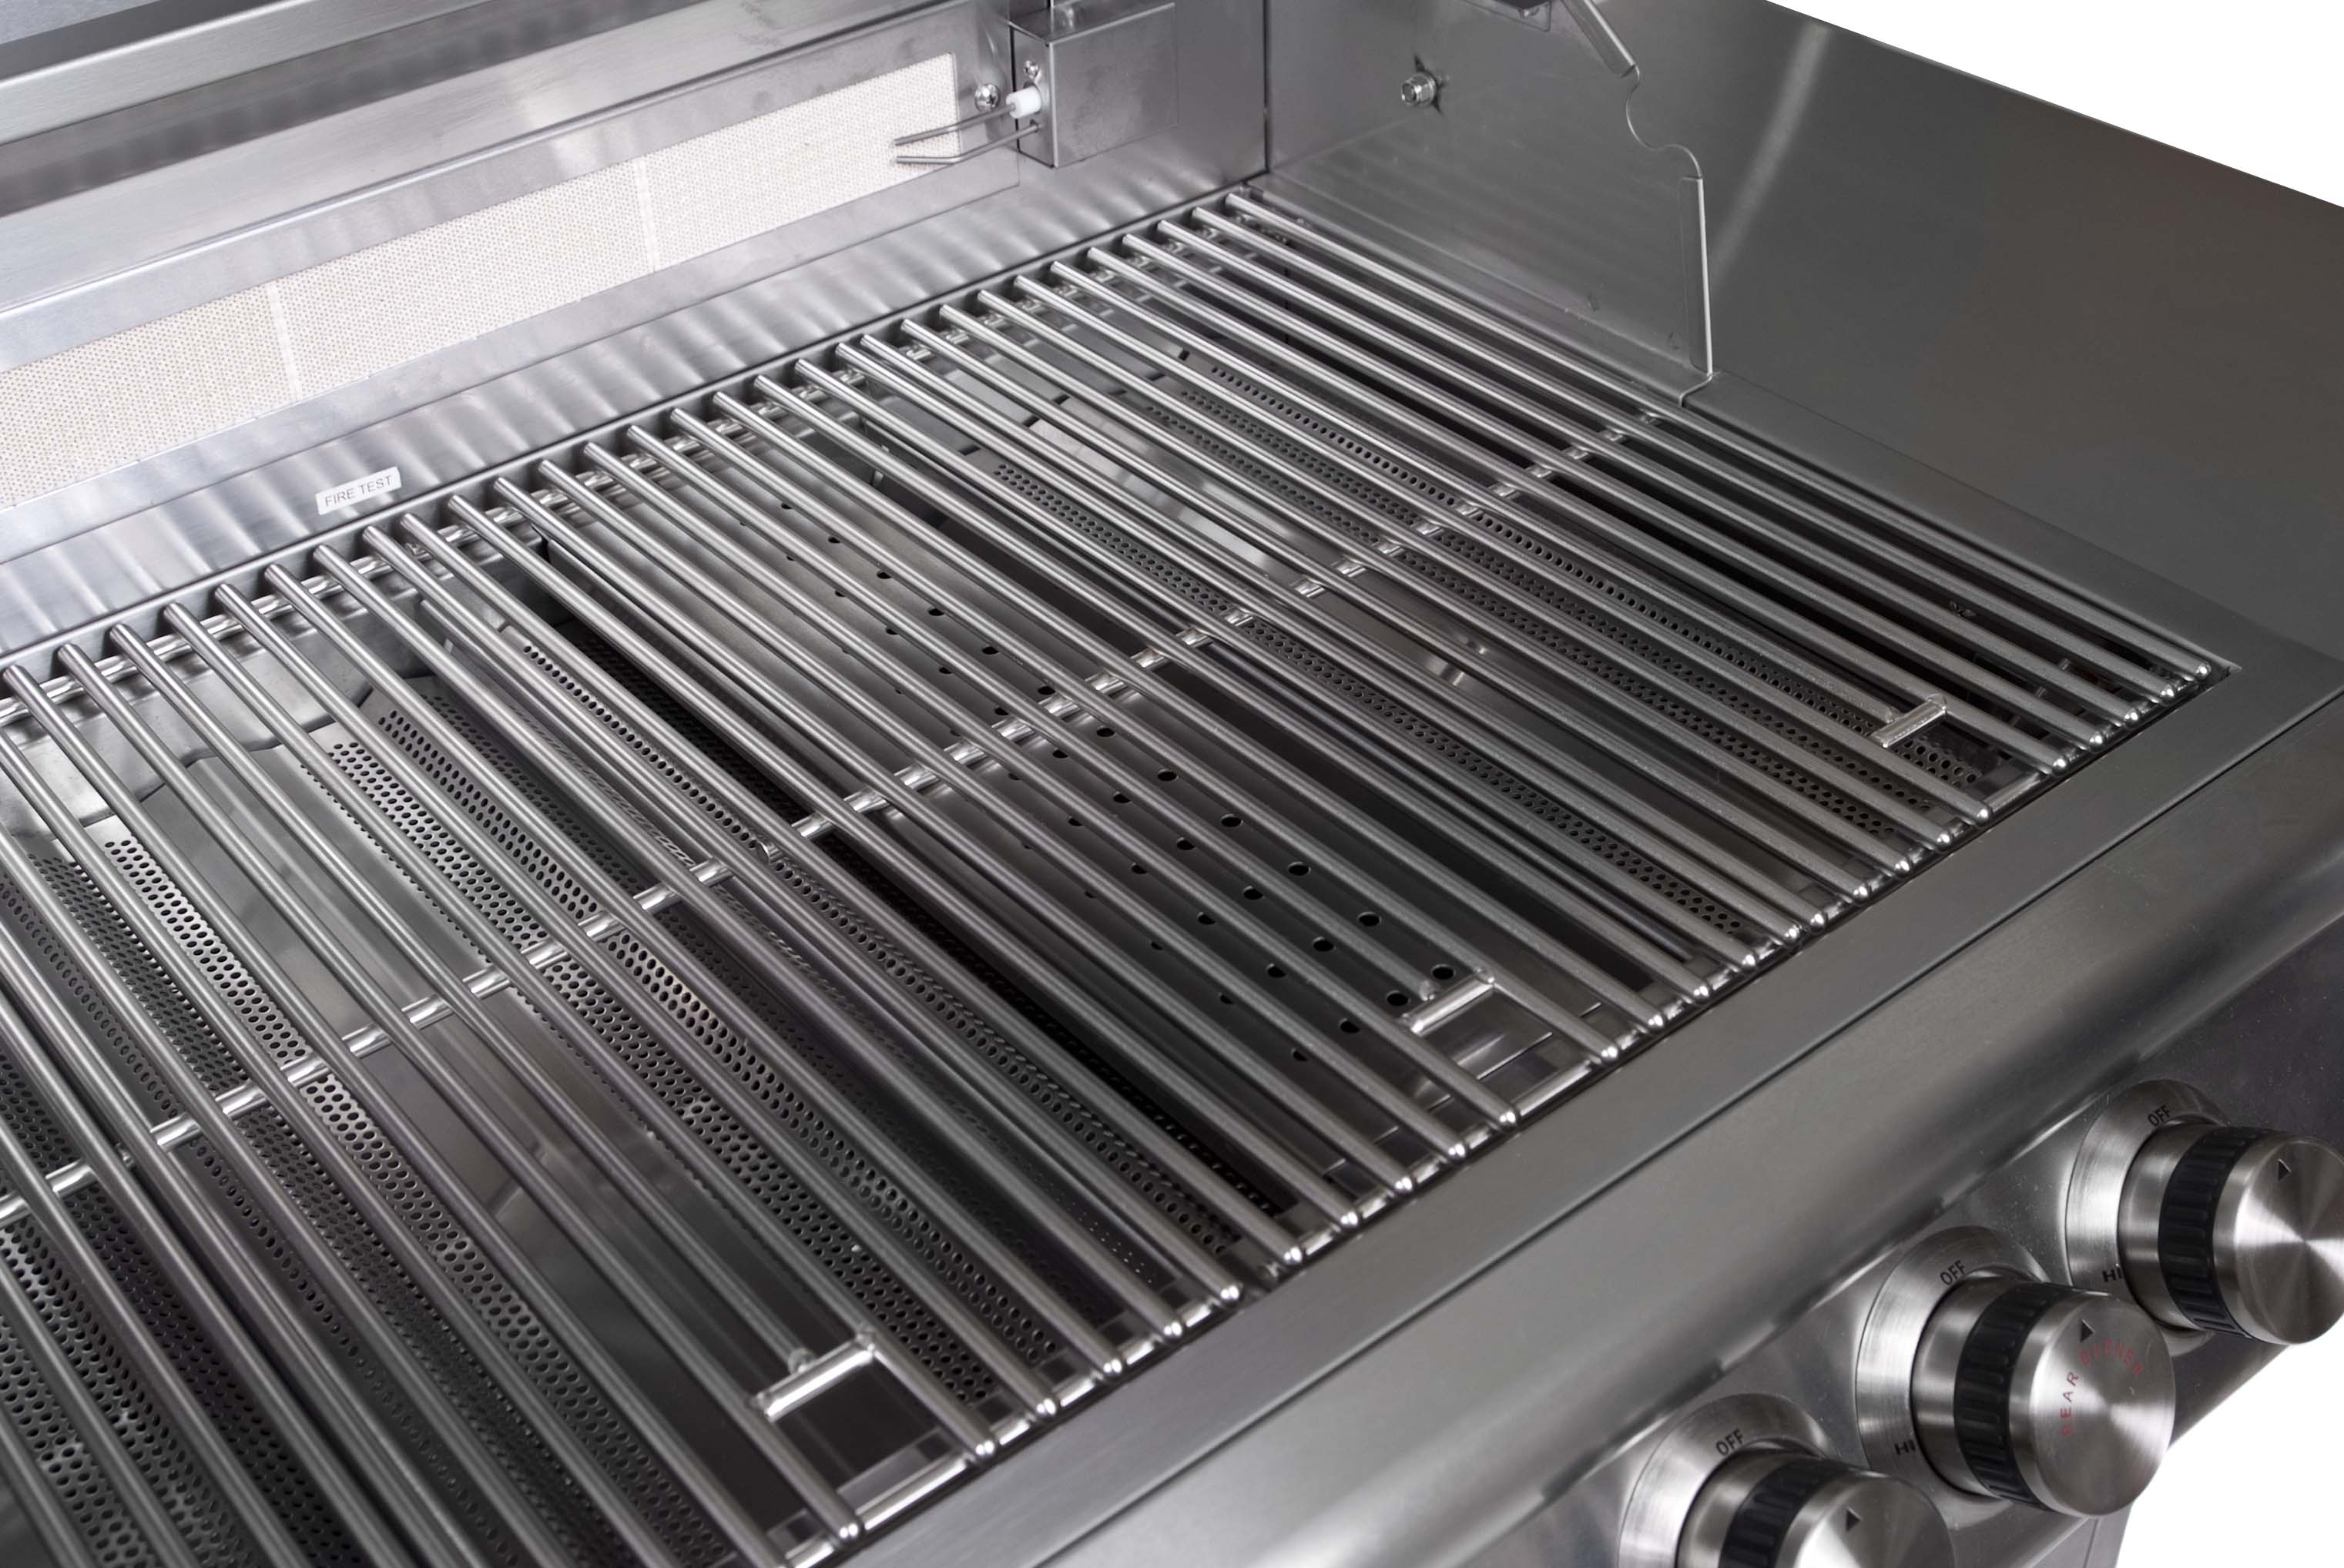 Cleaning Your Blaze Grill Best Of Backyard